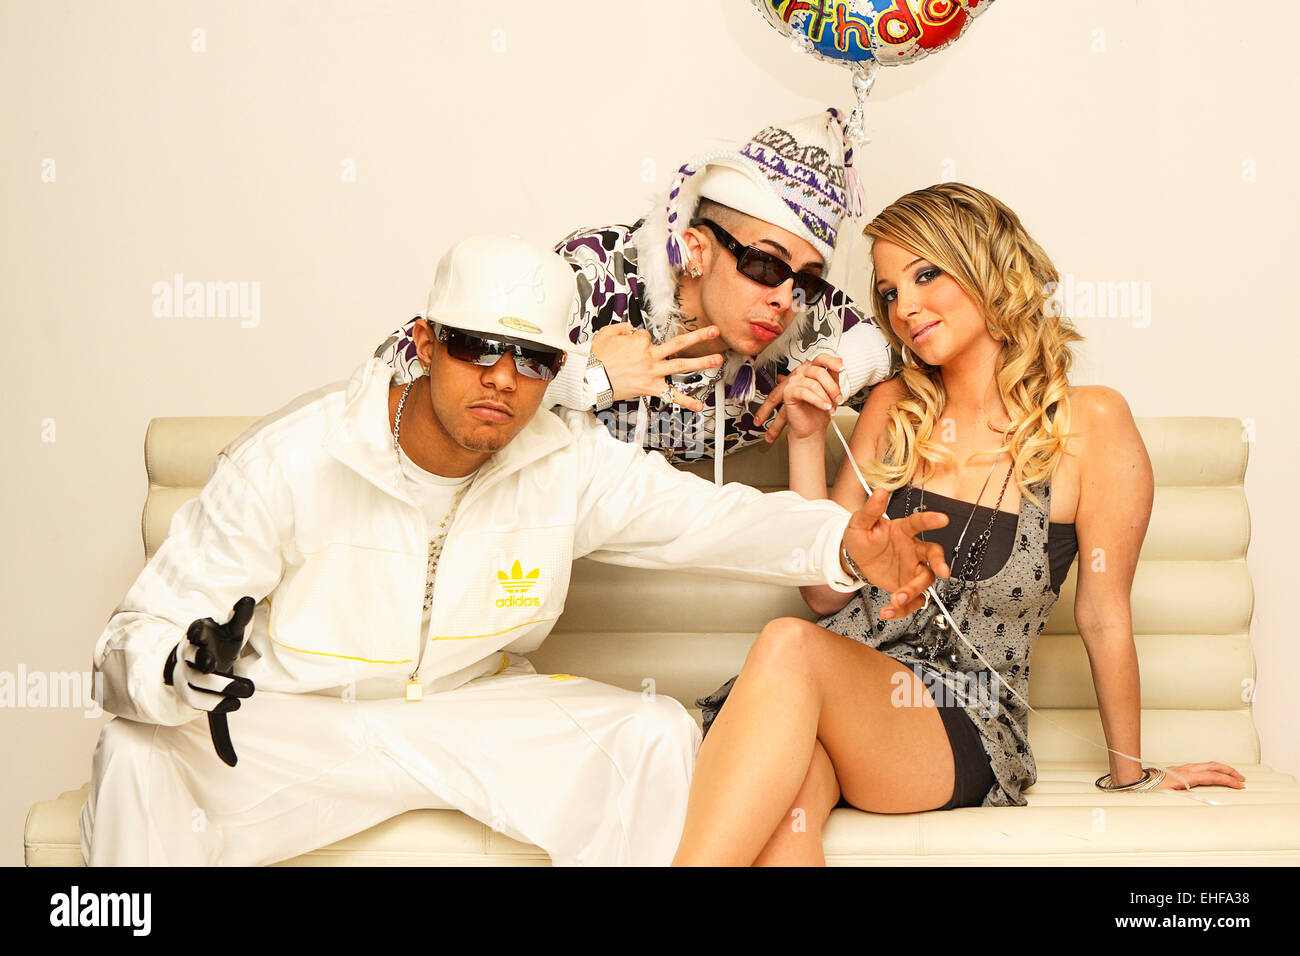 N-Dubz photographed at the MTV studios in Camden London 2008. - Stock Image